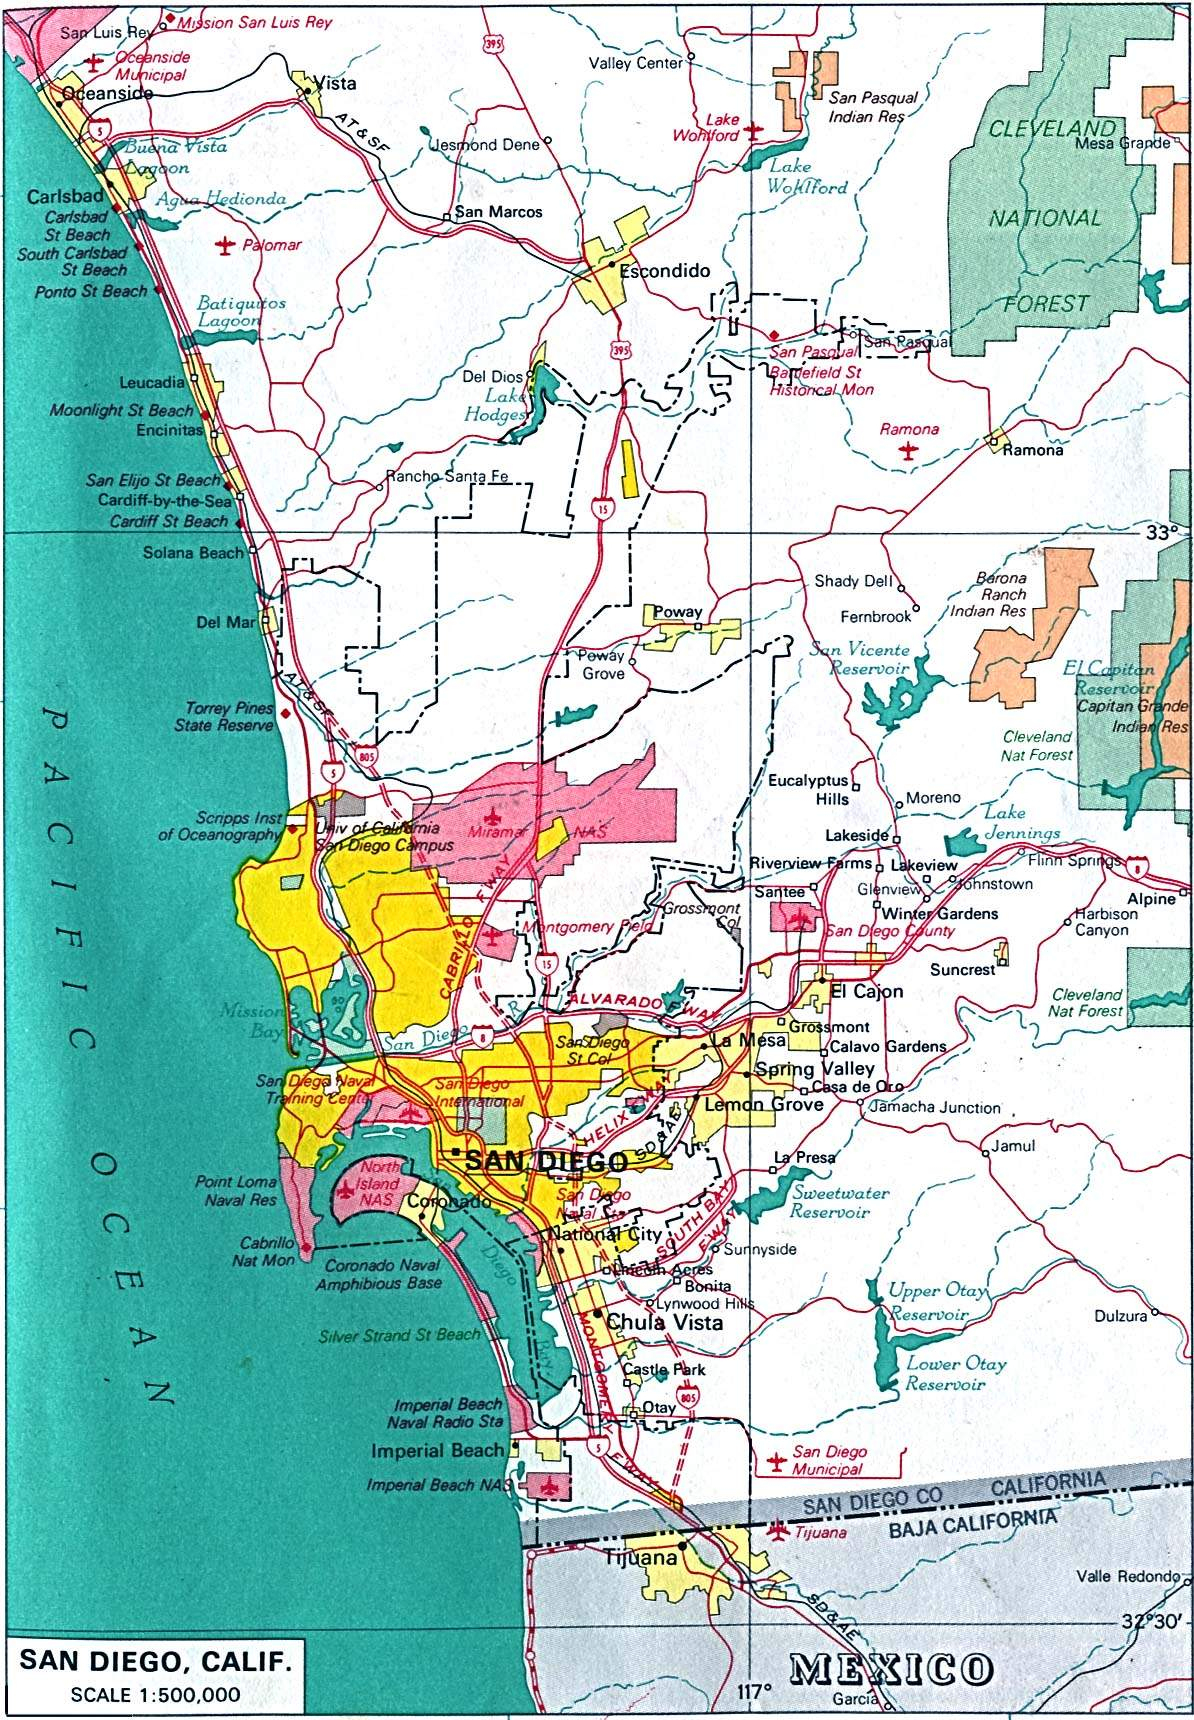 Large San Diego Maps For Free Download And Print   High-Resolution - Detailed Map Of San Diego California